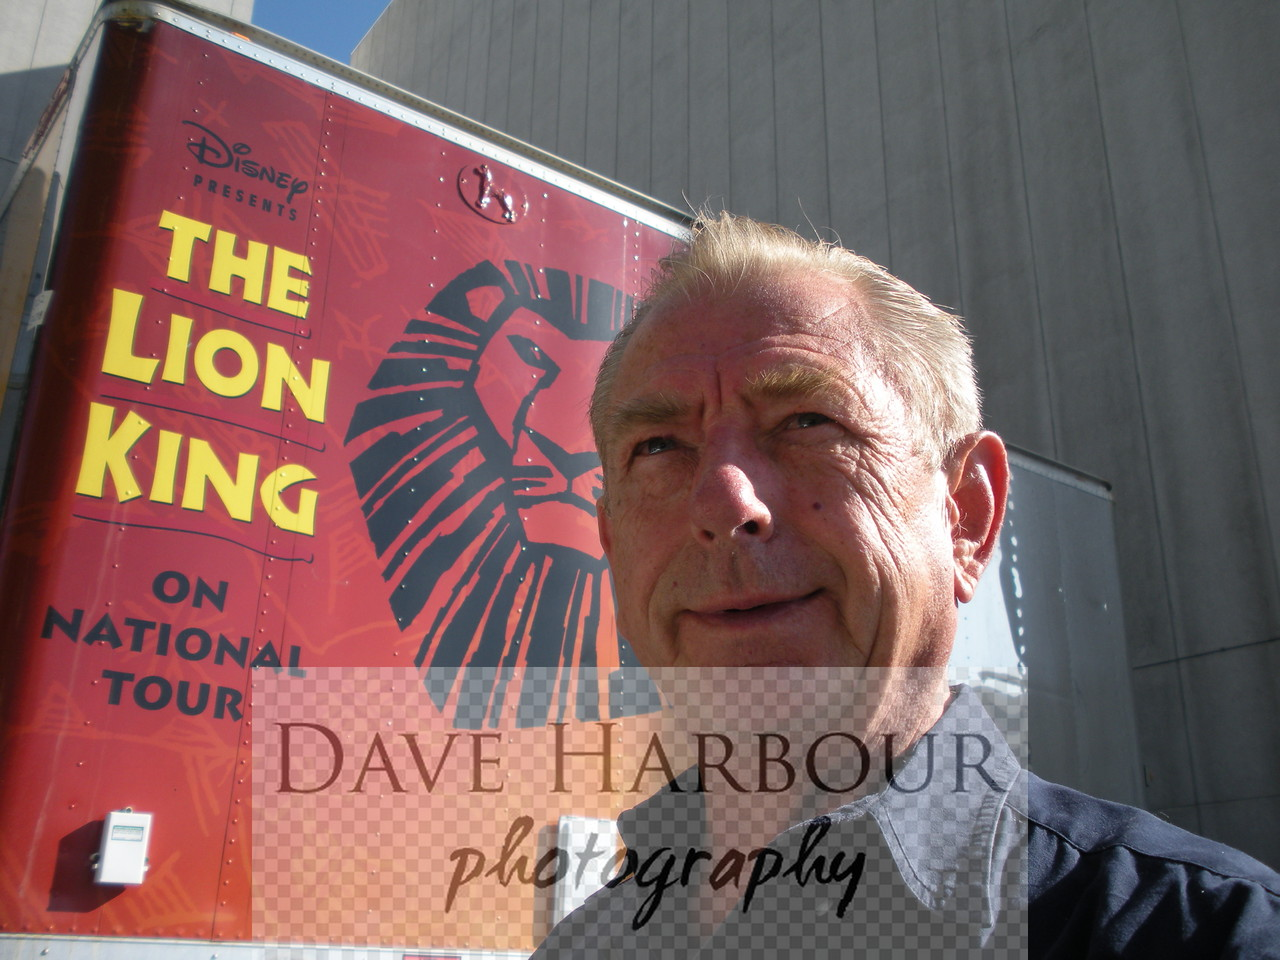 Dave Harbour